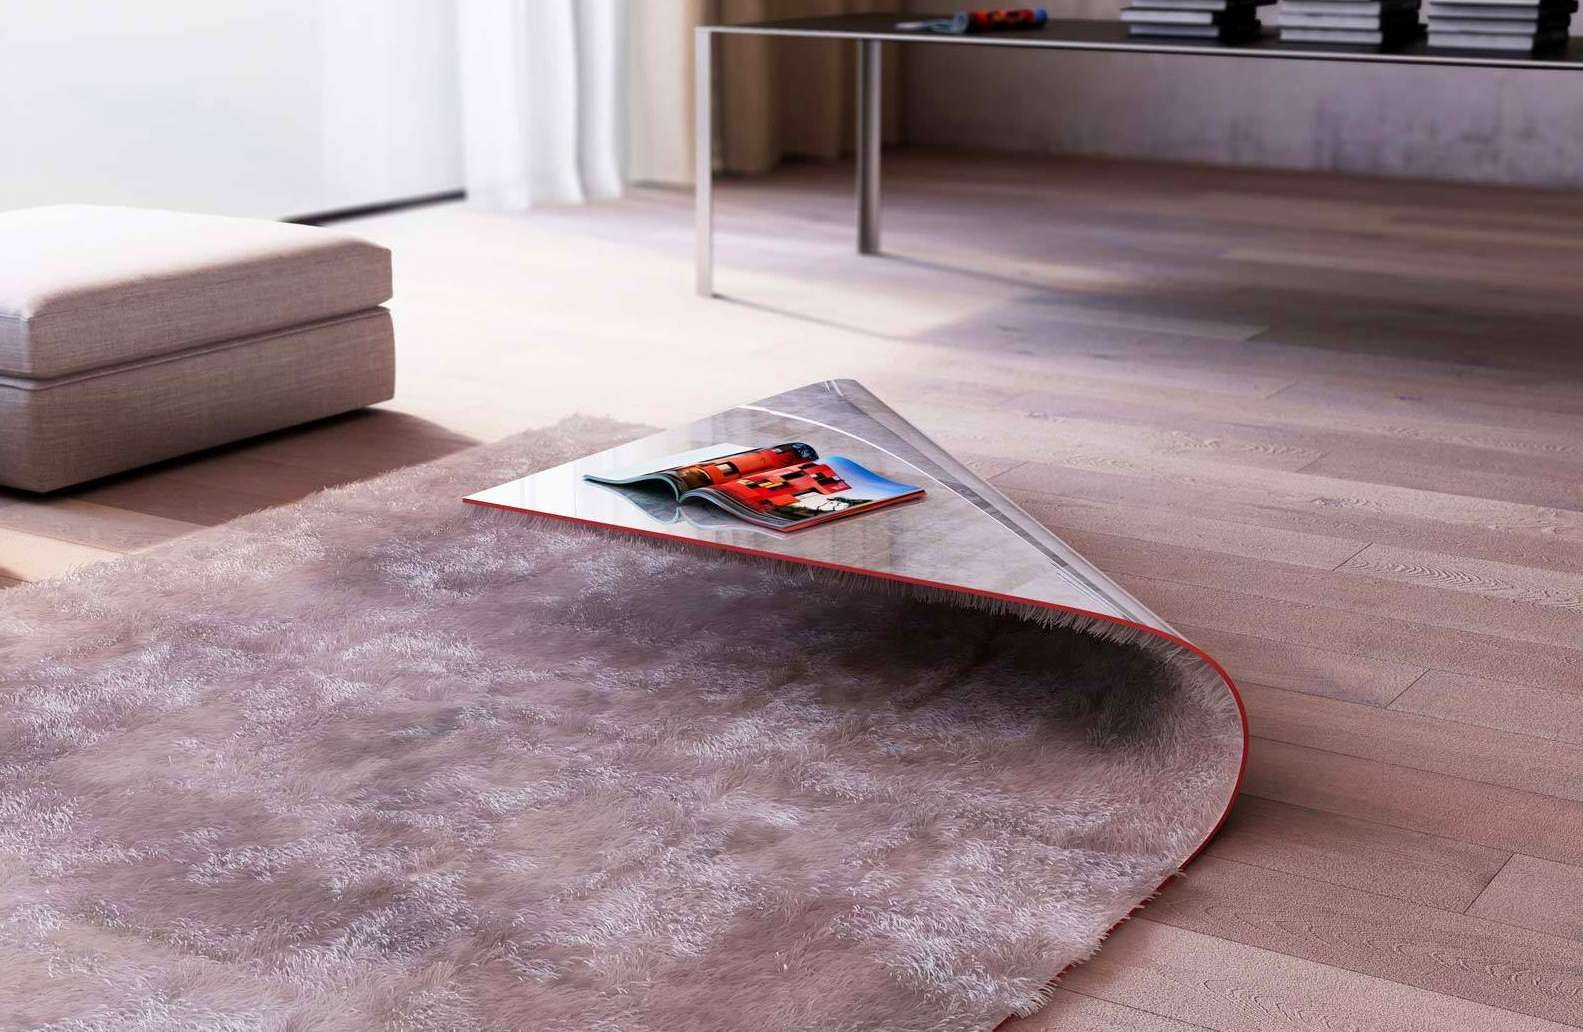 Preferred Unique Coffee Tables In 19 Unique Coffee Table Designs For A Very Special Coffee Time (View 11 of 20)